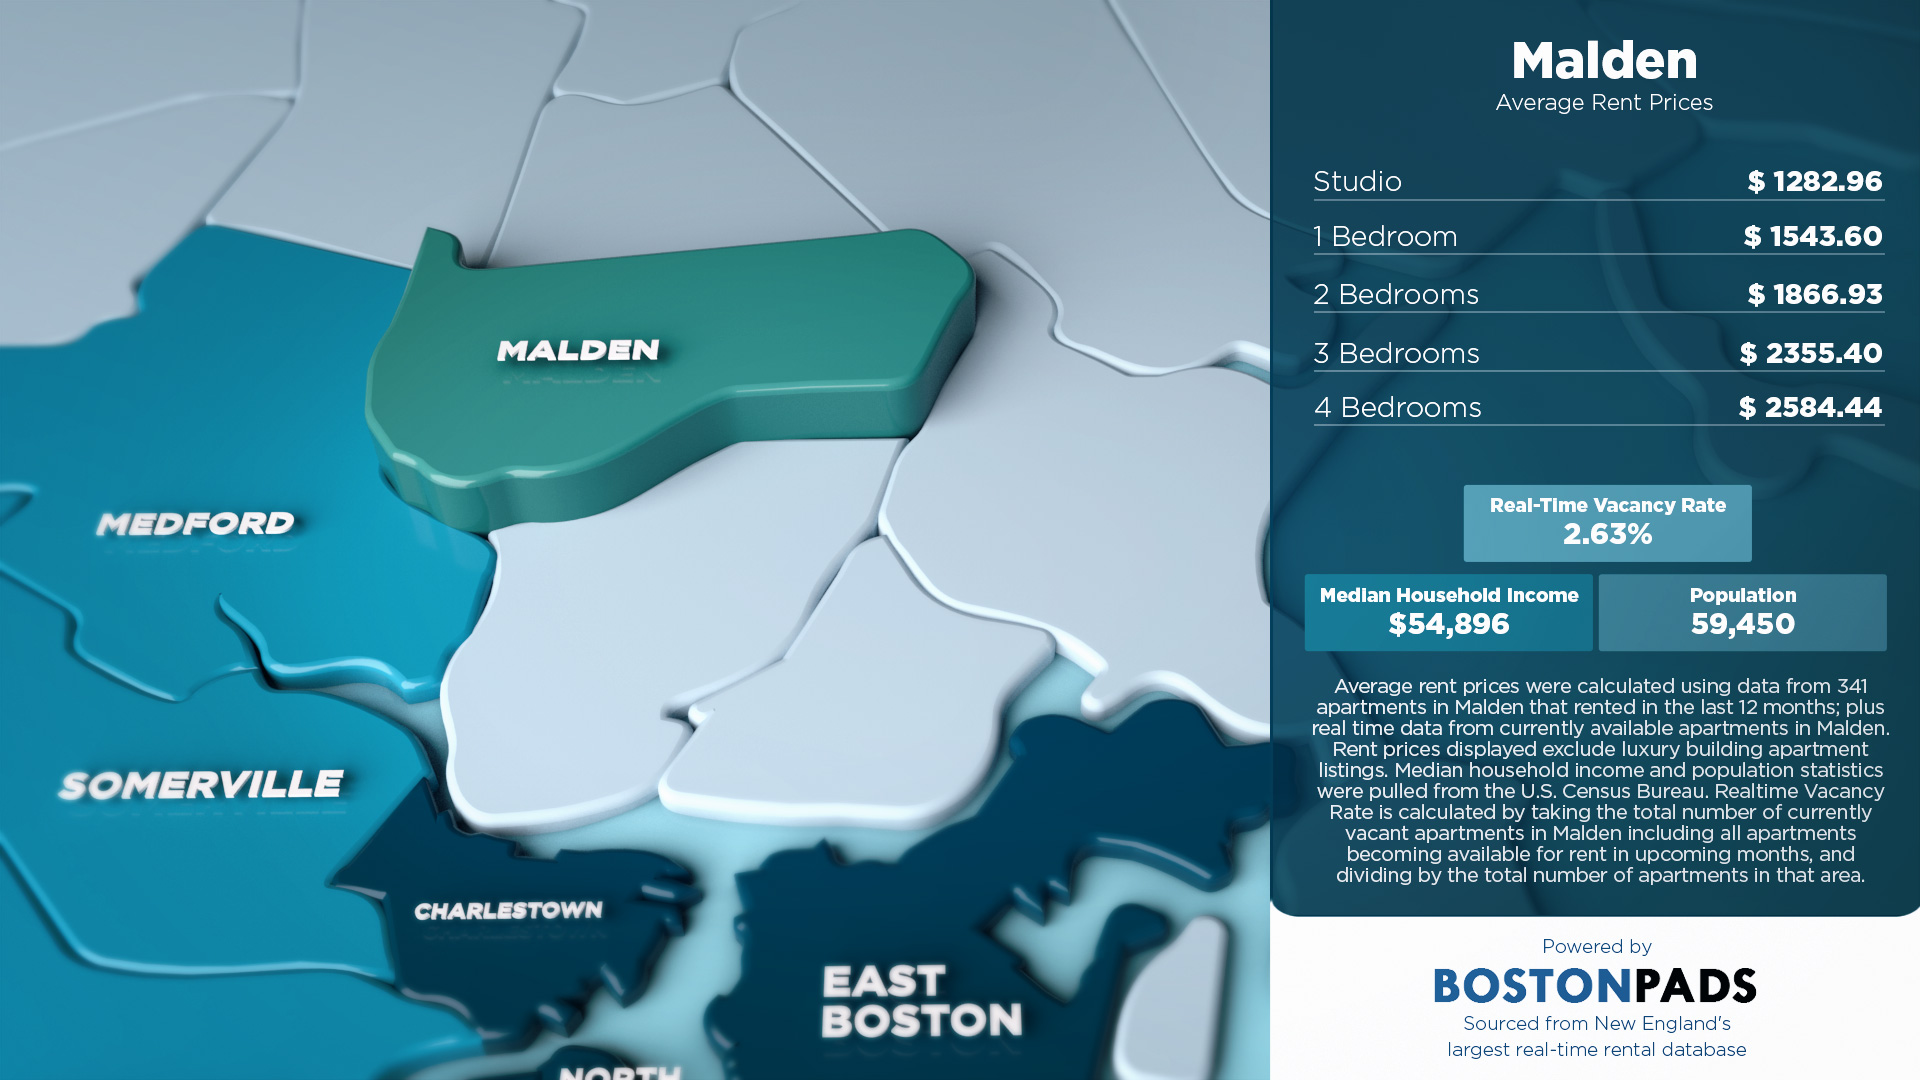 Average Rent Prices in Malden